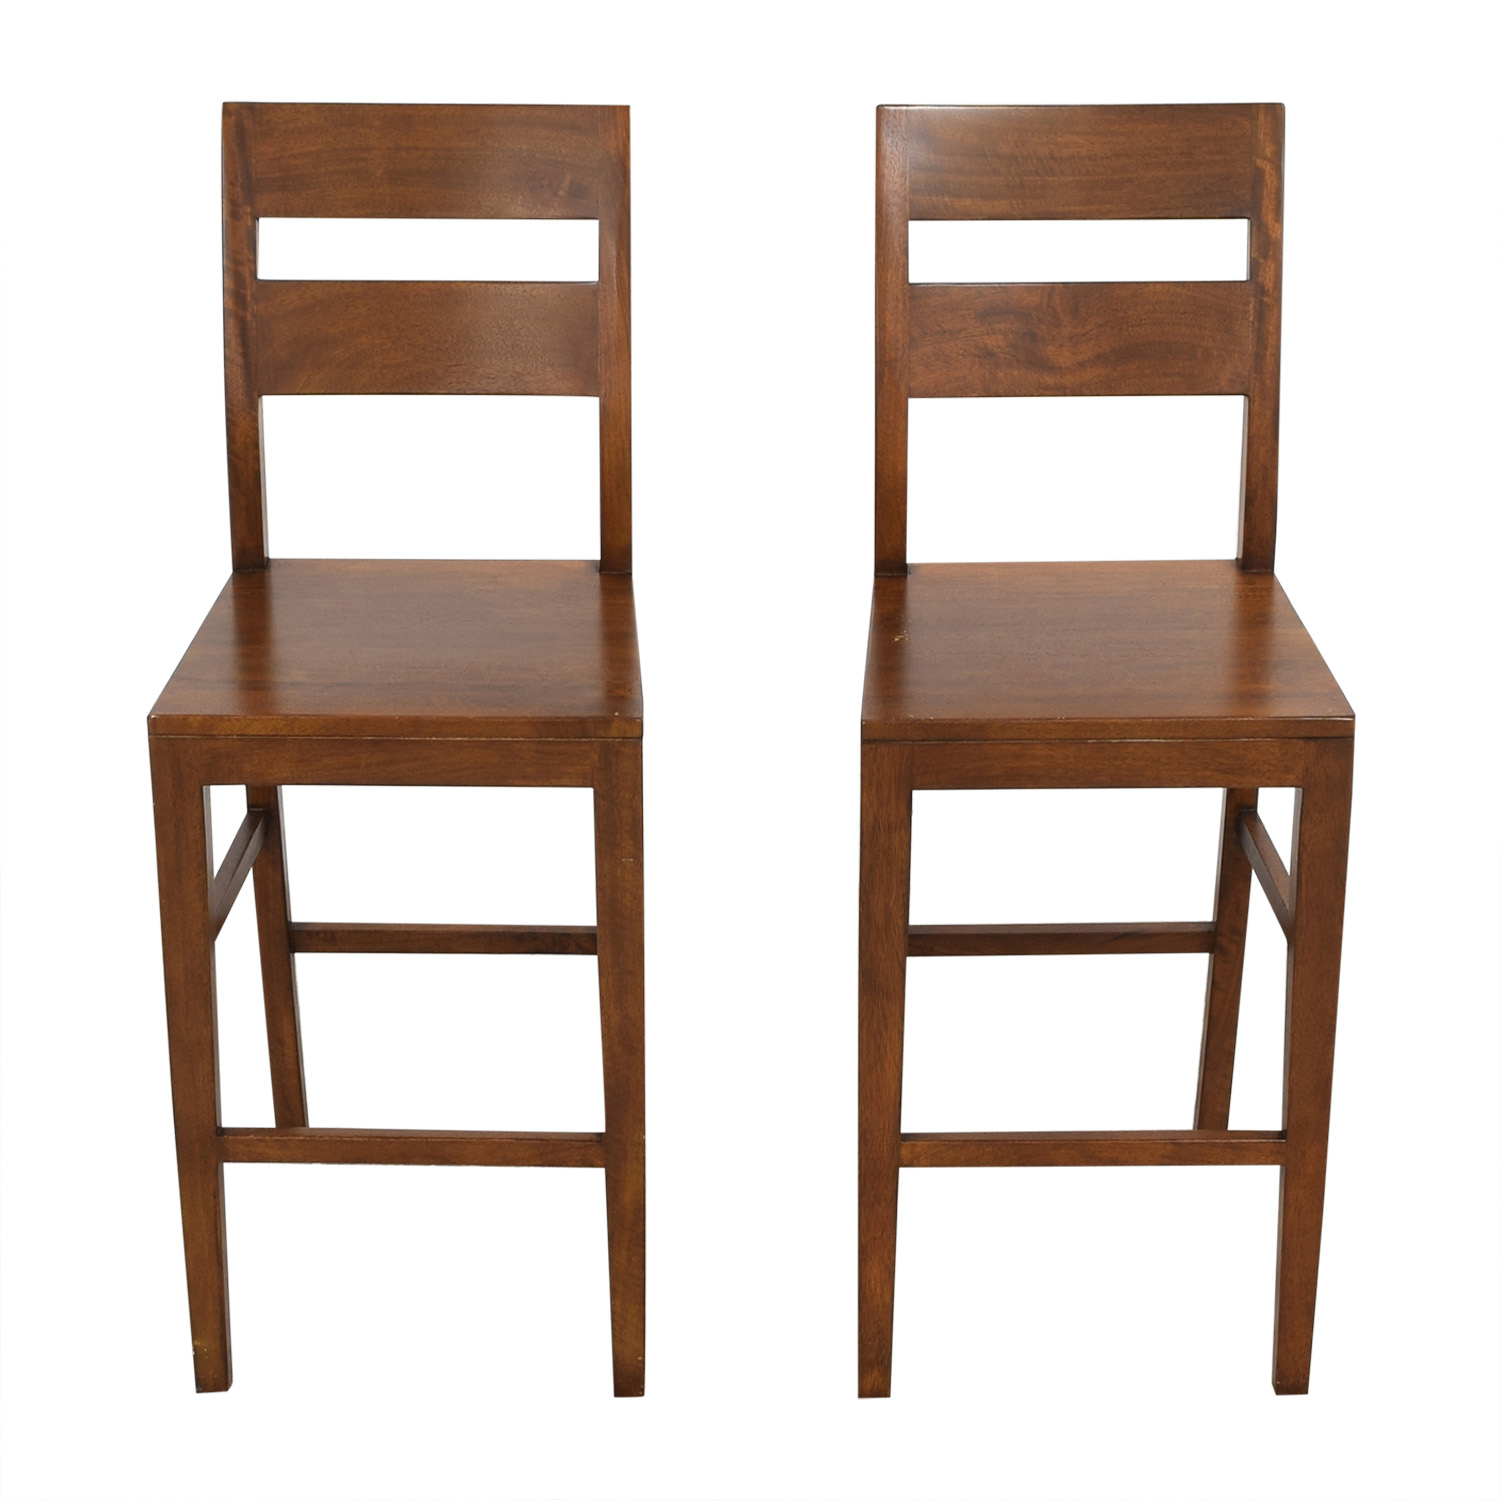 Crate & Barrel Crate and Barrel Counter Stools ma